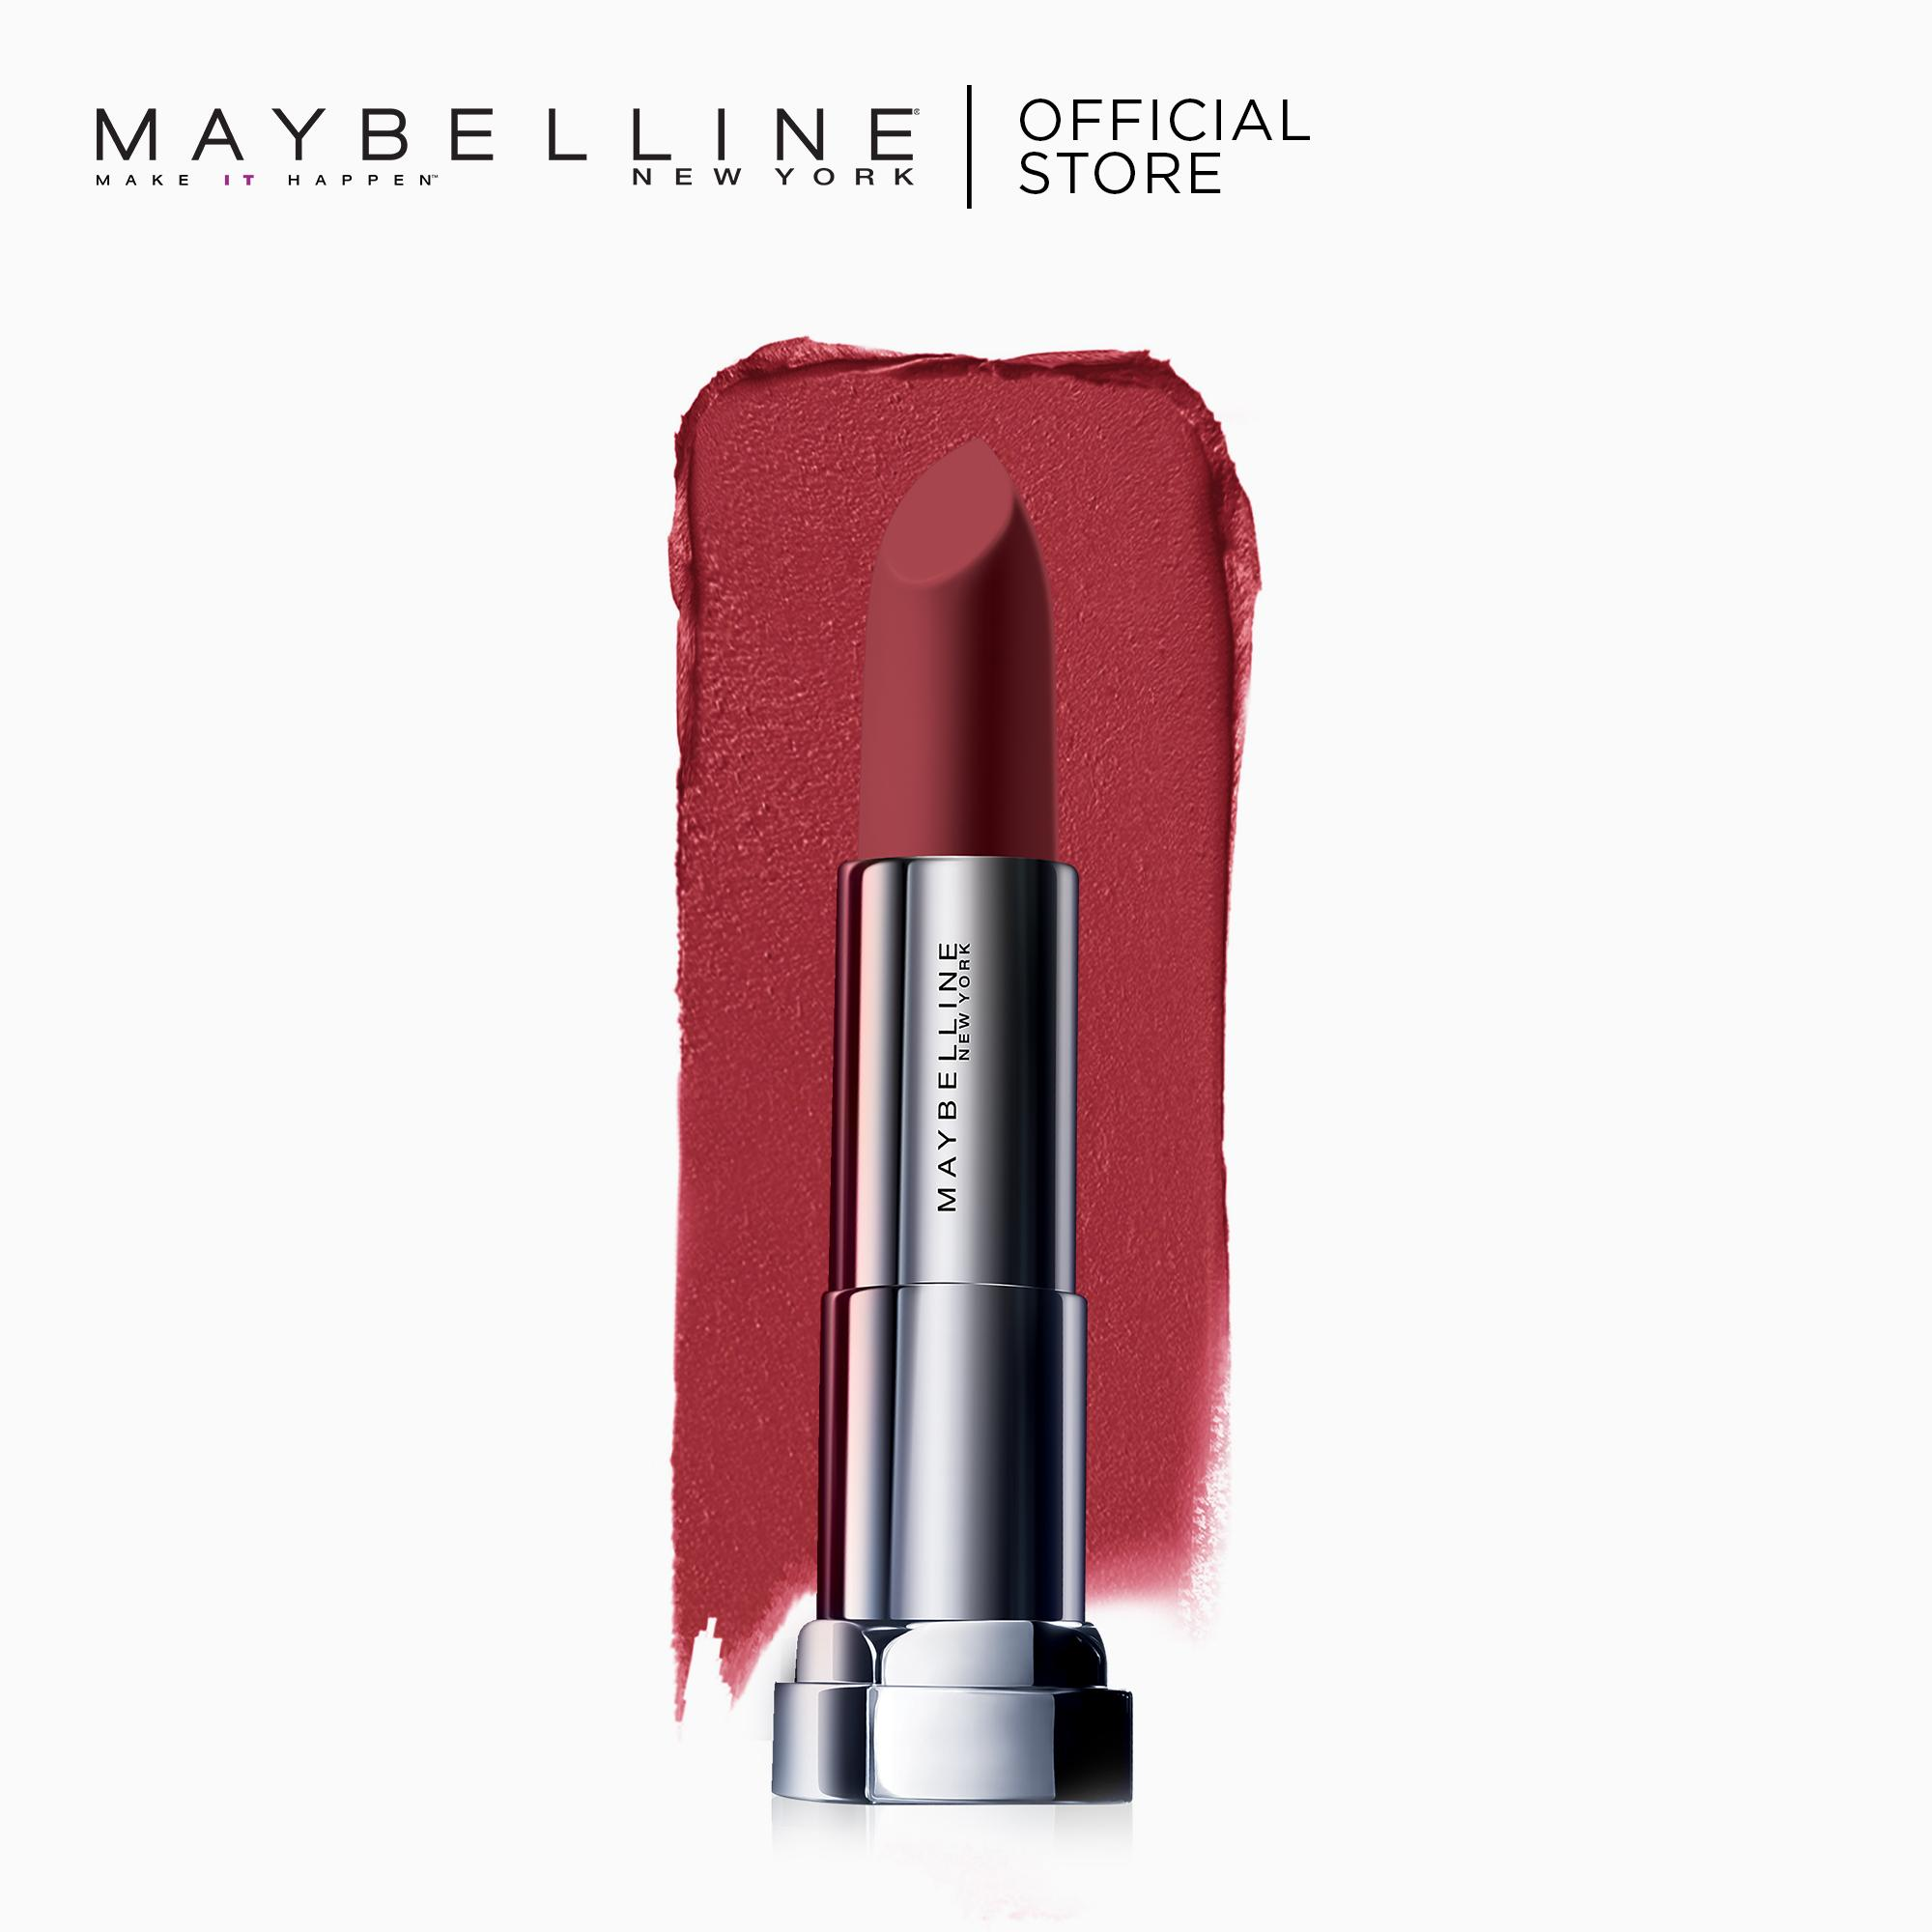 Maybelline Color Sensational Powder Matte Lipstick (Noir Red) Philippines